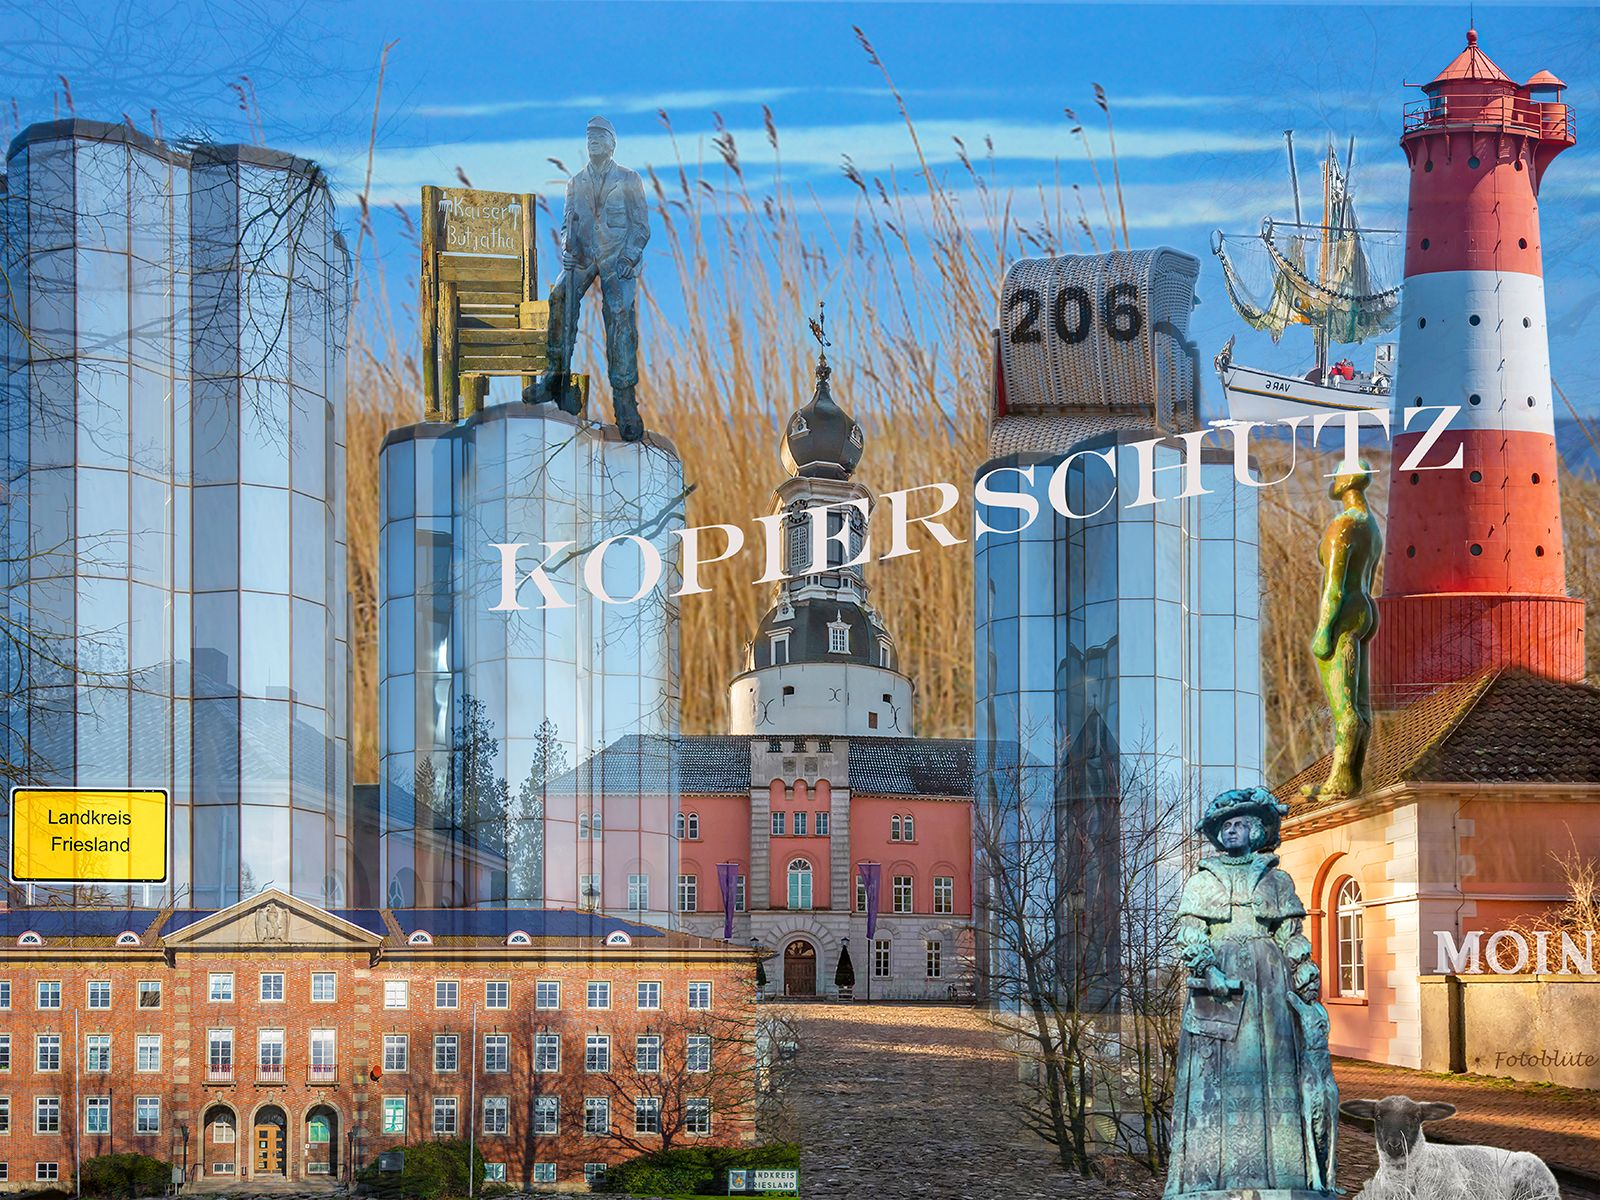 FrieslandCollage80x60_web